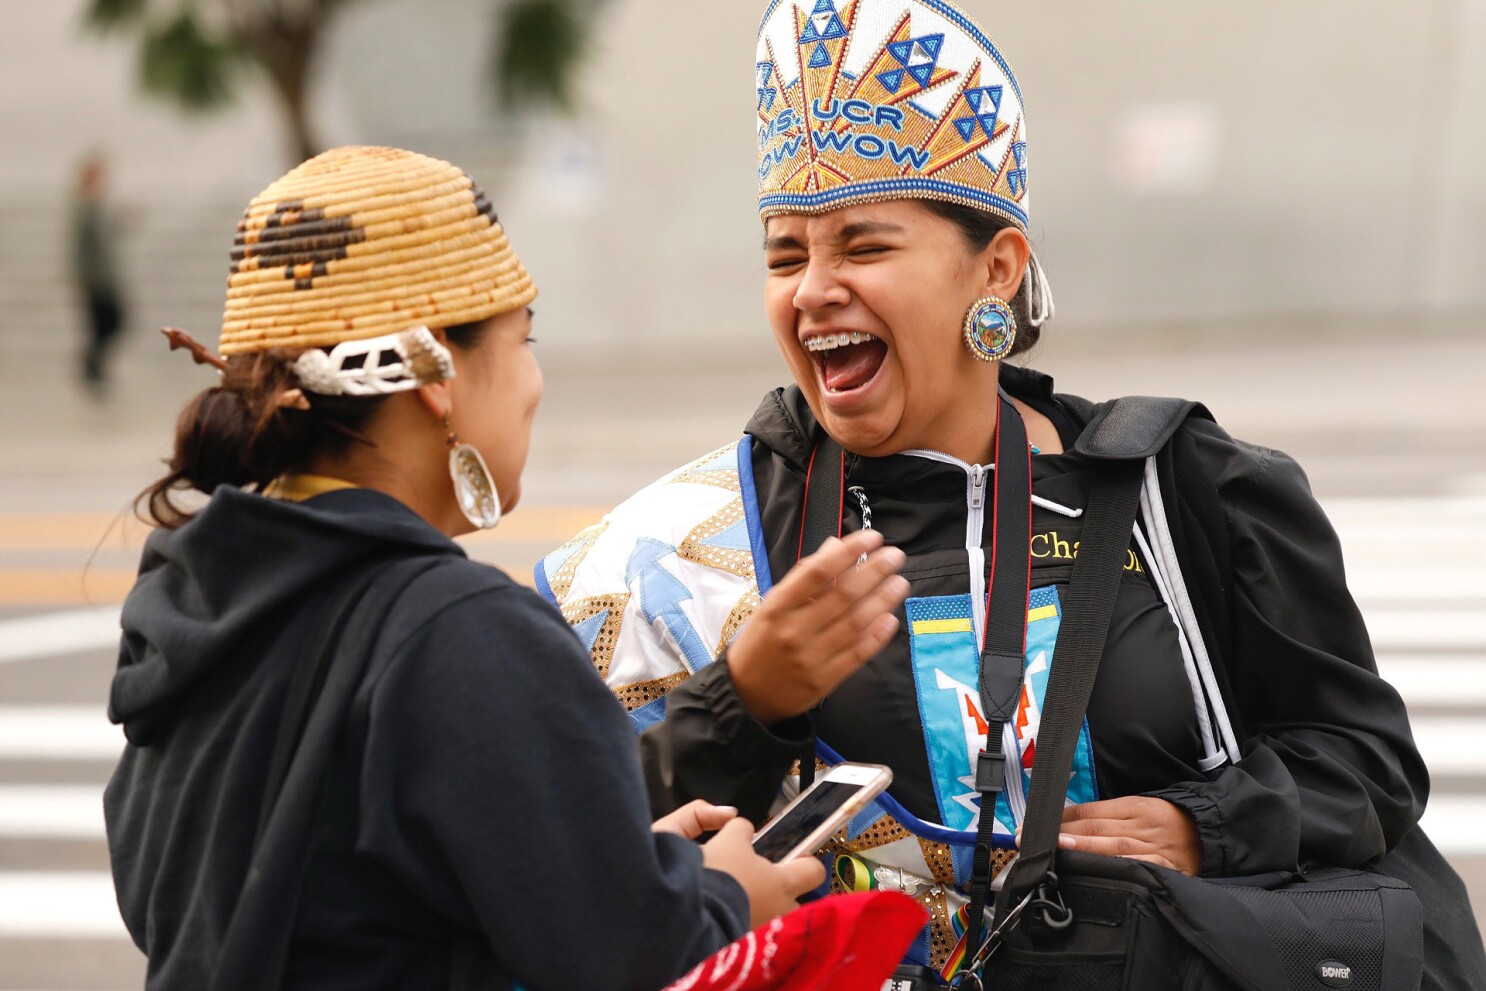 Native comedians bring humor to Indigenous Peoples Day - Los Angeles Times